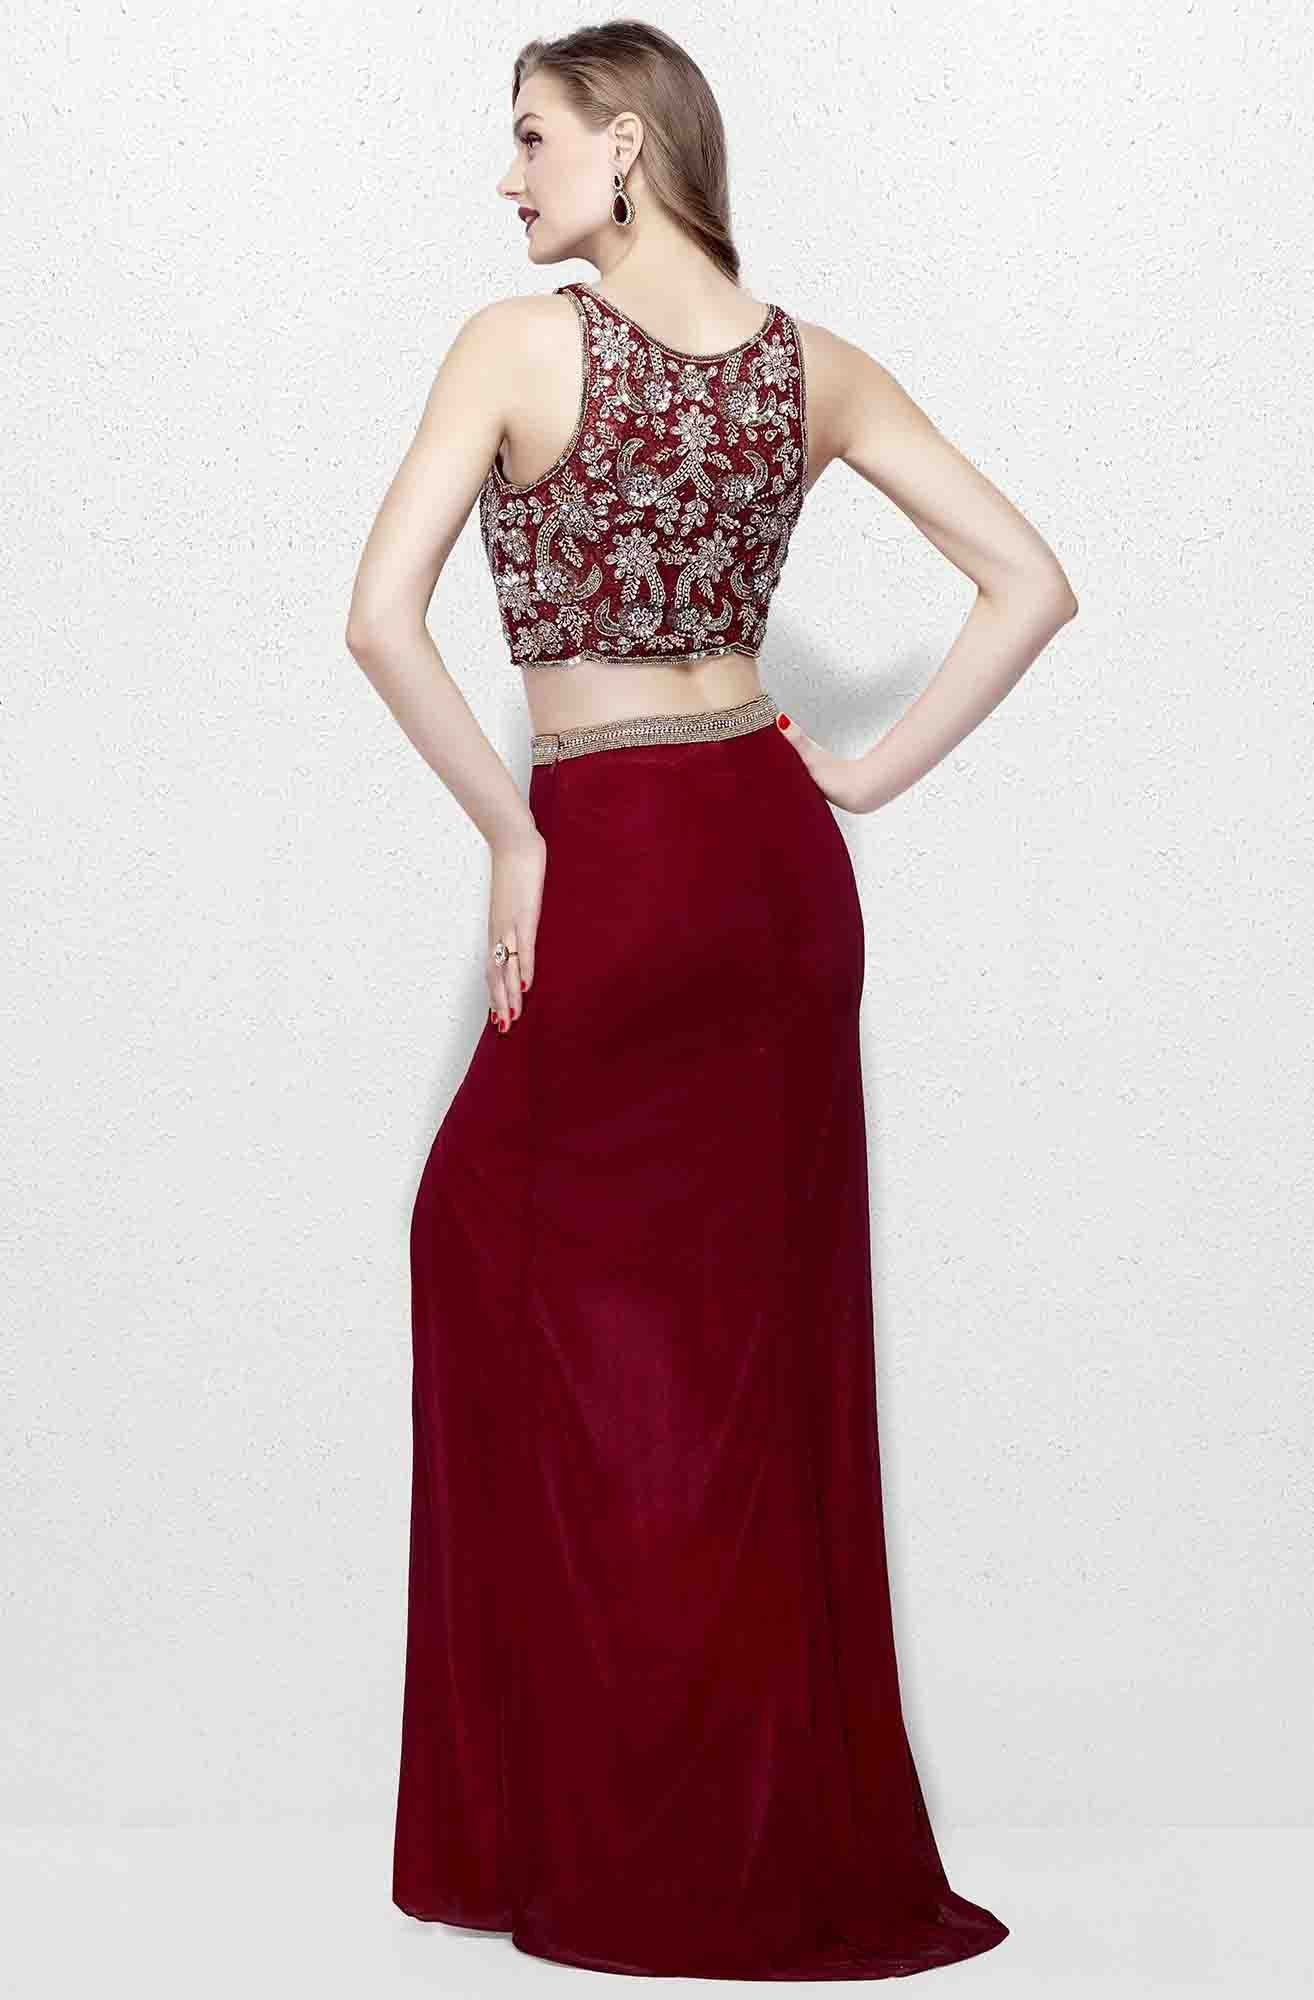 Primavera - 3063 Two-Piece Beaded Bateau Evening Gown in Red